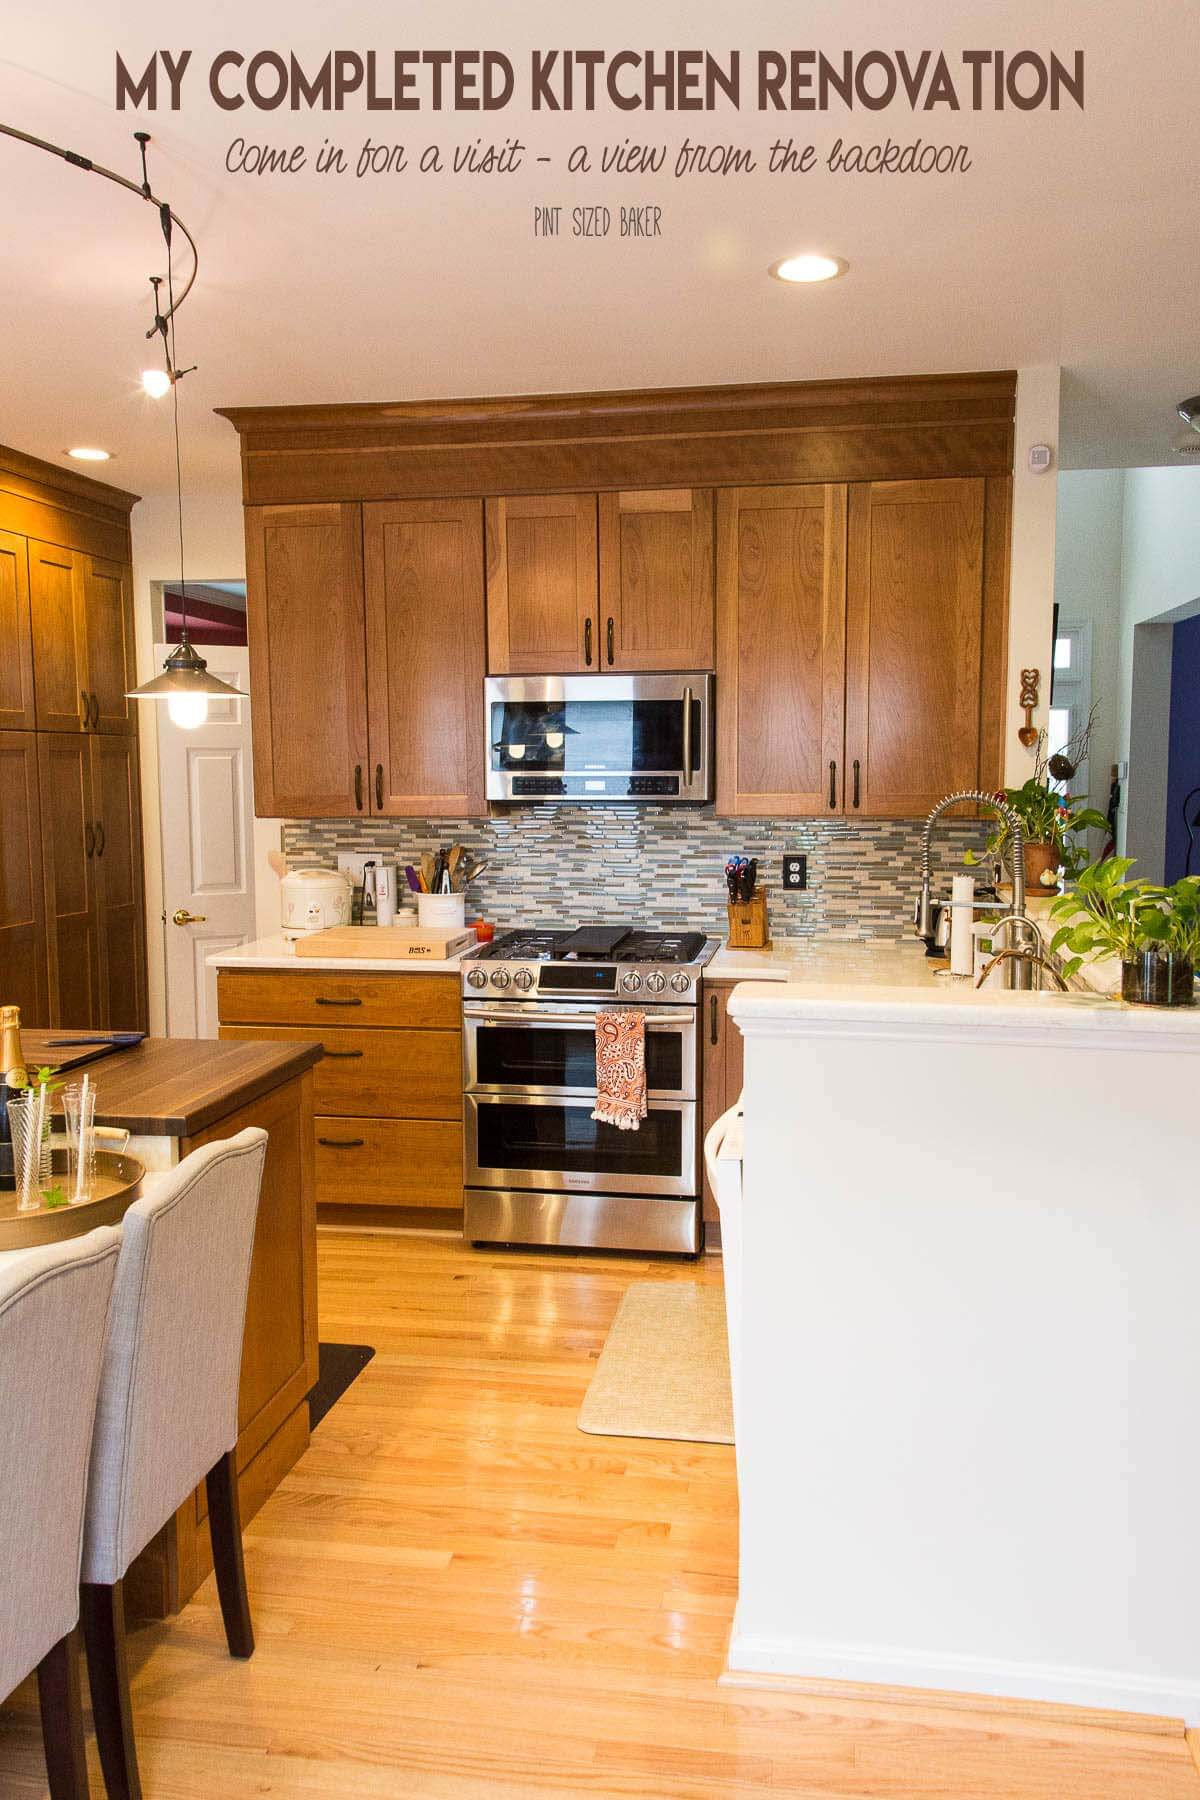 Our Kitchen Renovation has been Completed. We've given our kitchen a face lift and are loving the results. Check out how we've spruced up out kitchen to make it more functional for our family.